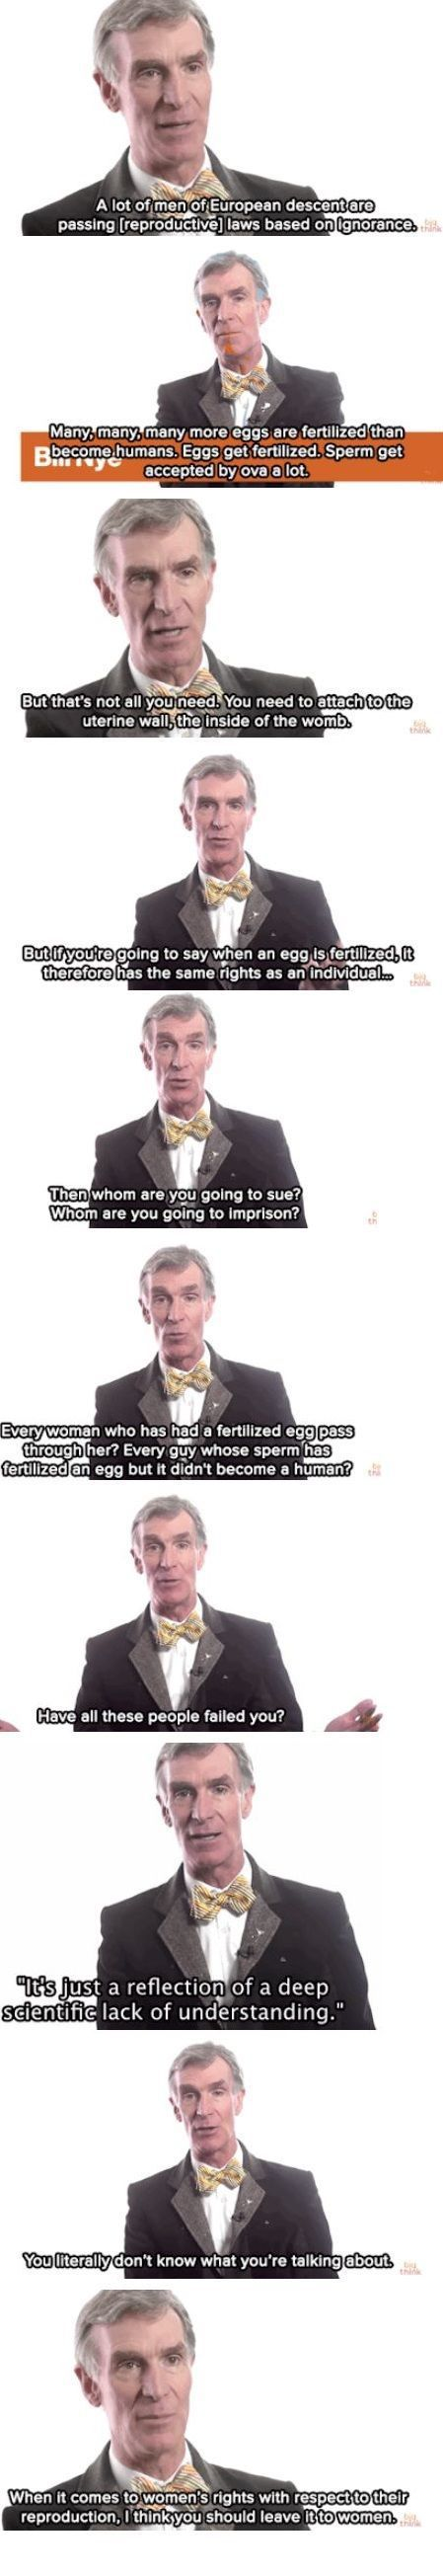 Inspirational Quote: Right on Bill Nye!